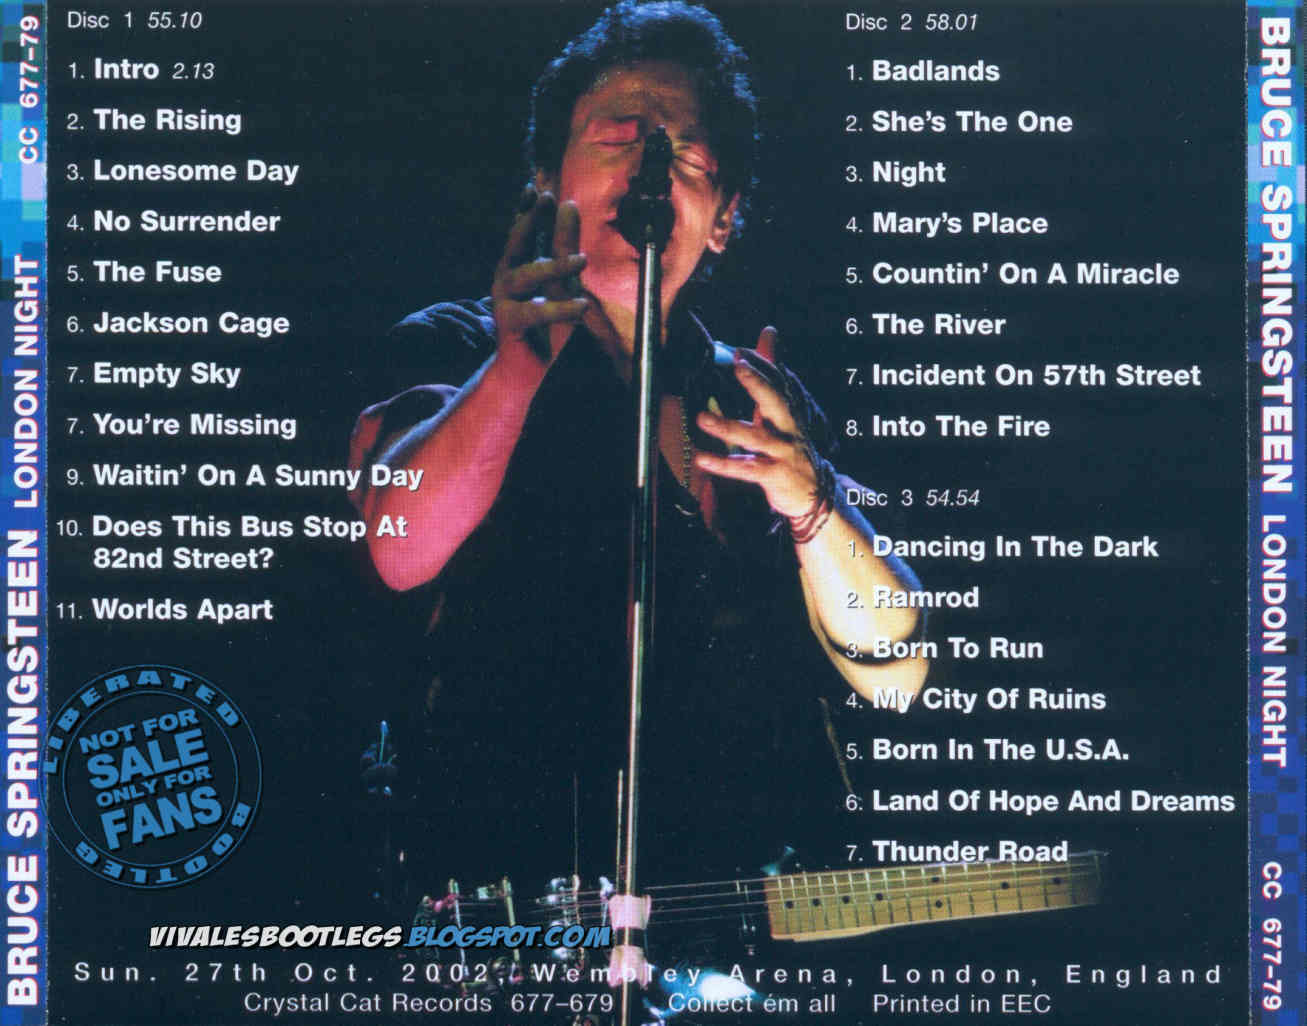 Bruce Springsteen: London Night. (Crystal Cat Records :: CC 677-79)